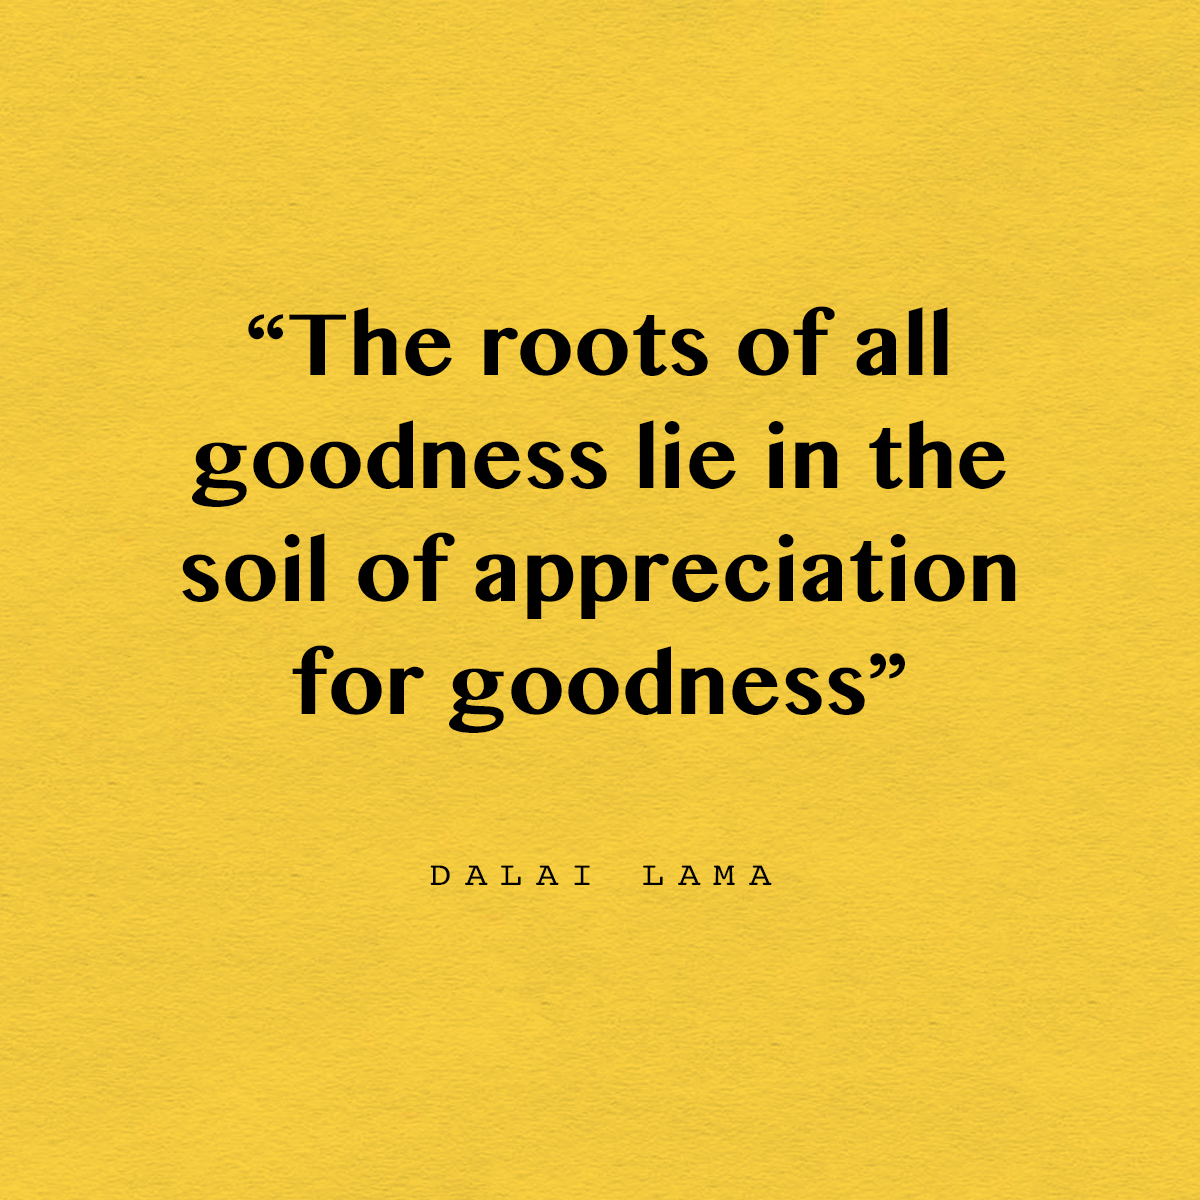 The roots of all goodness | Dalai Lama quote | Of Note Stationers